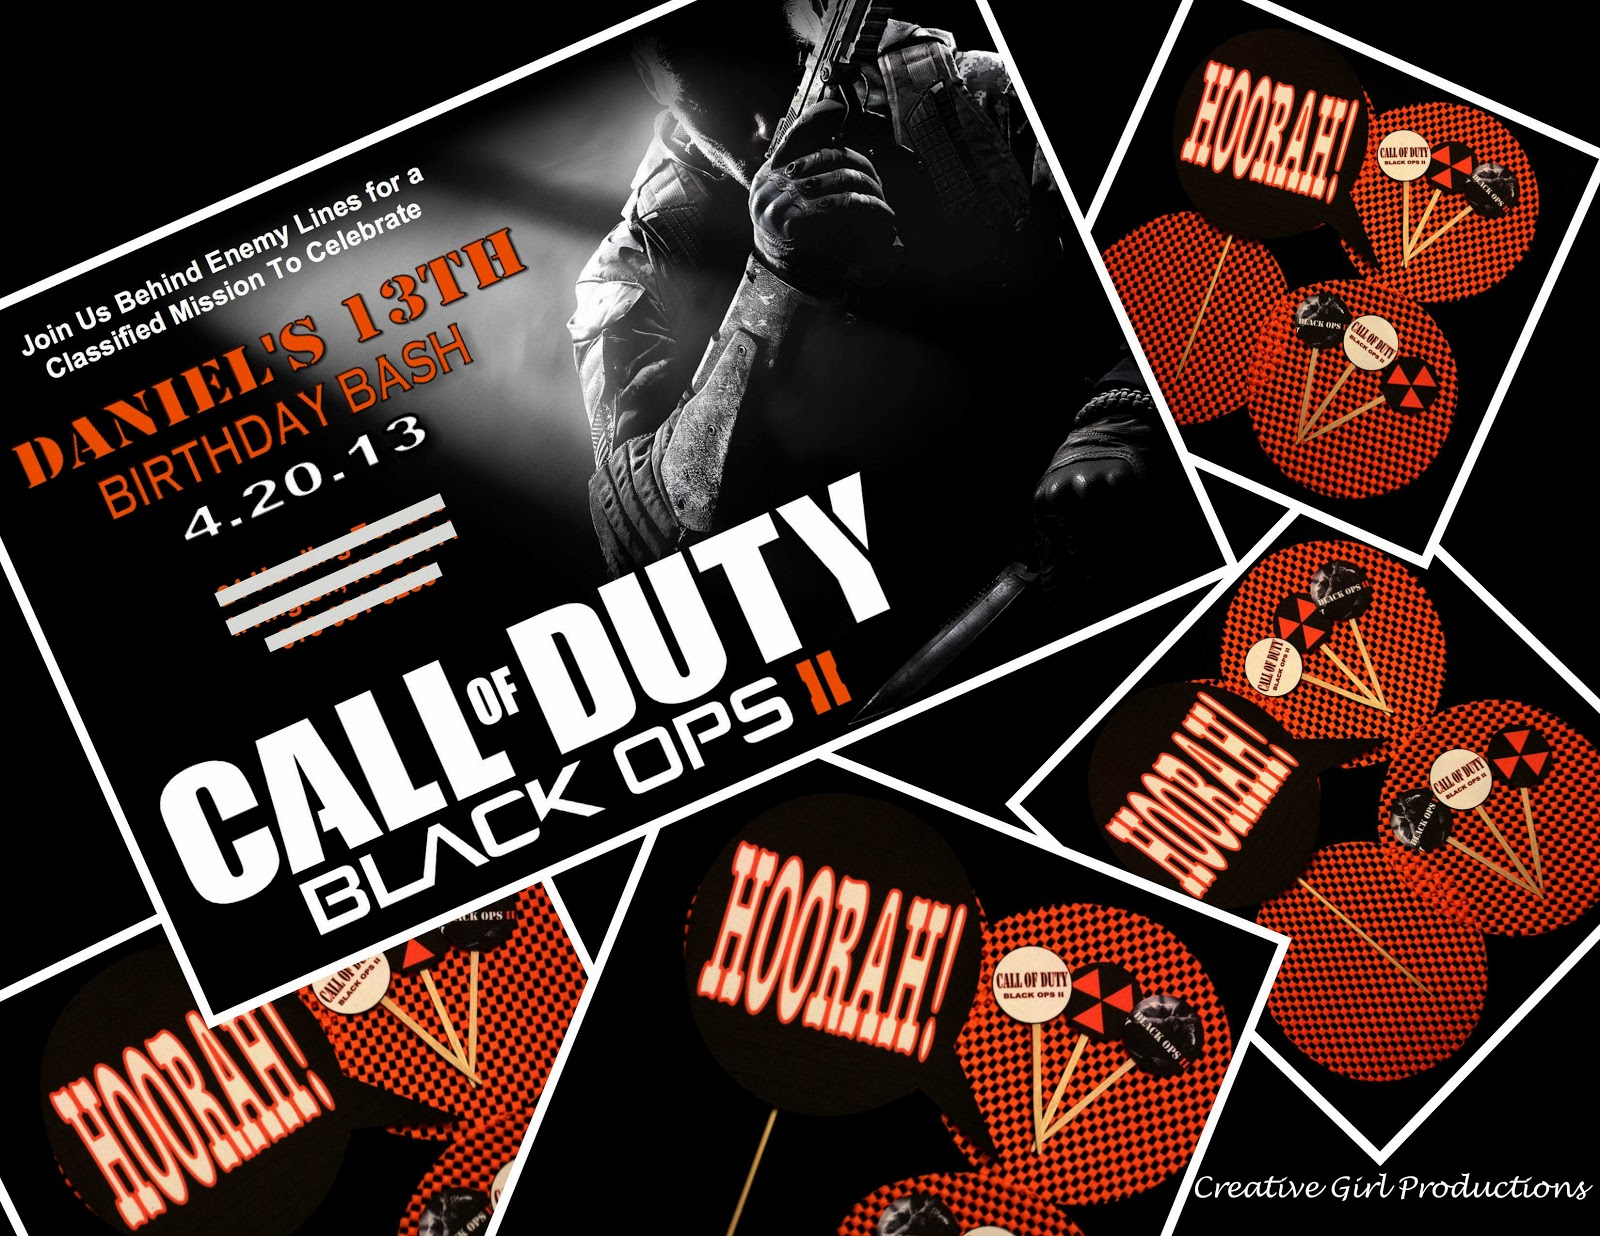 Call of Duty: Black Ops II - 13th Birthday Party!!!